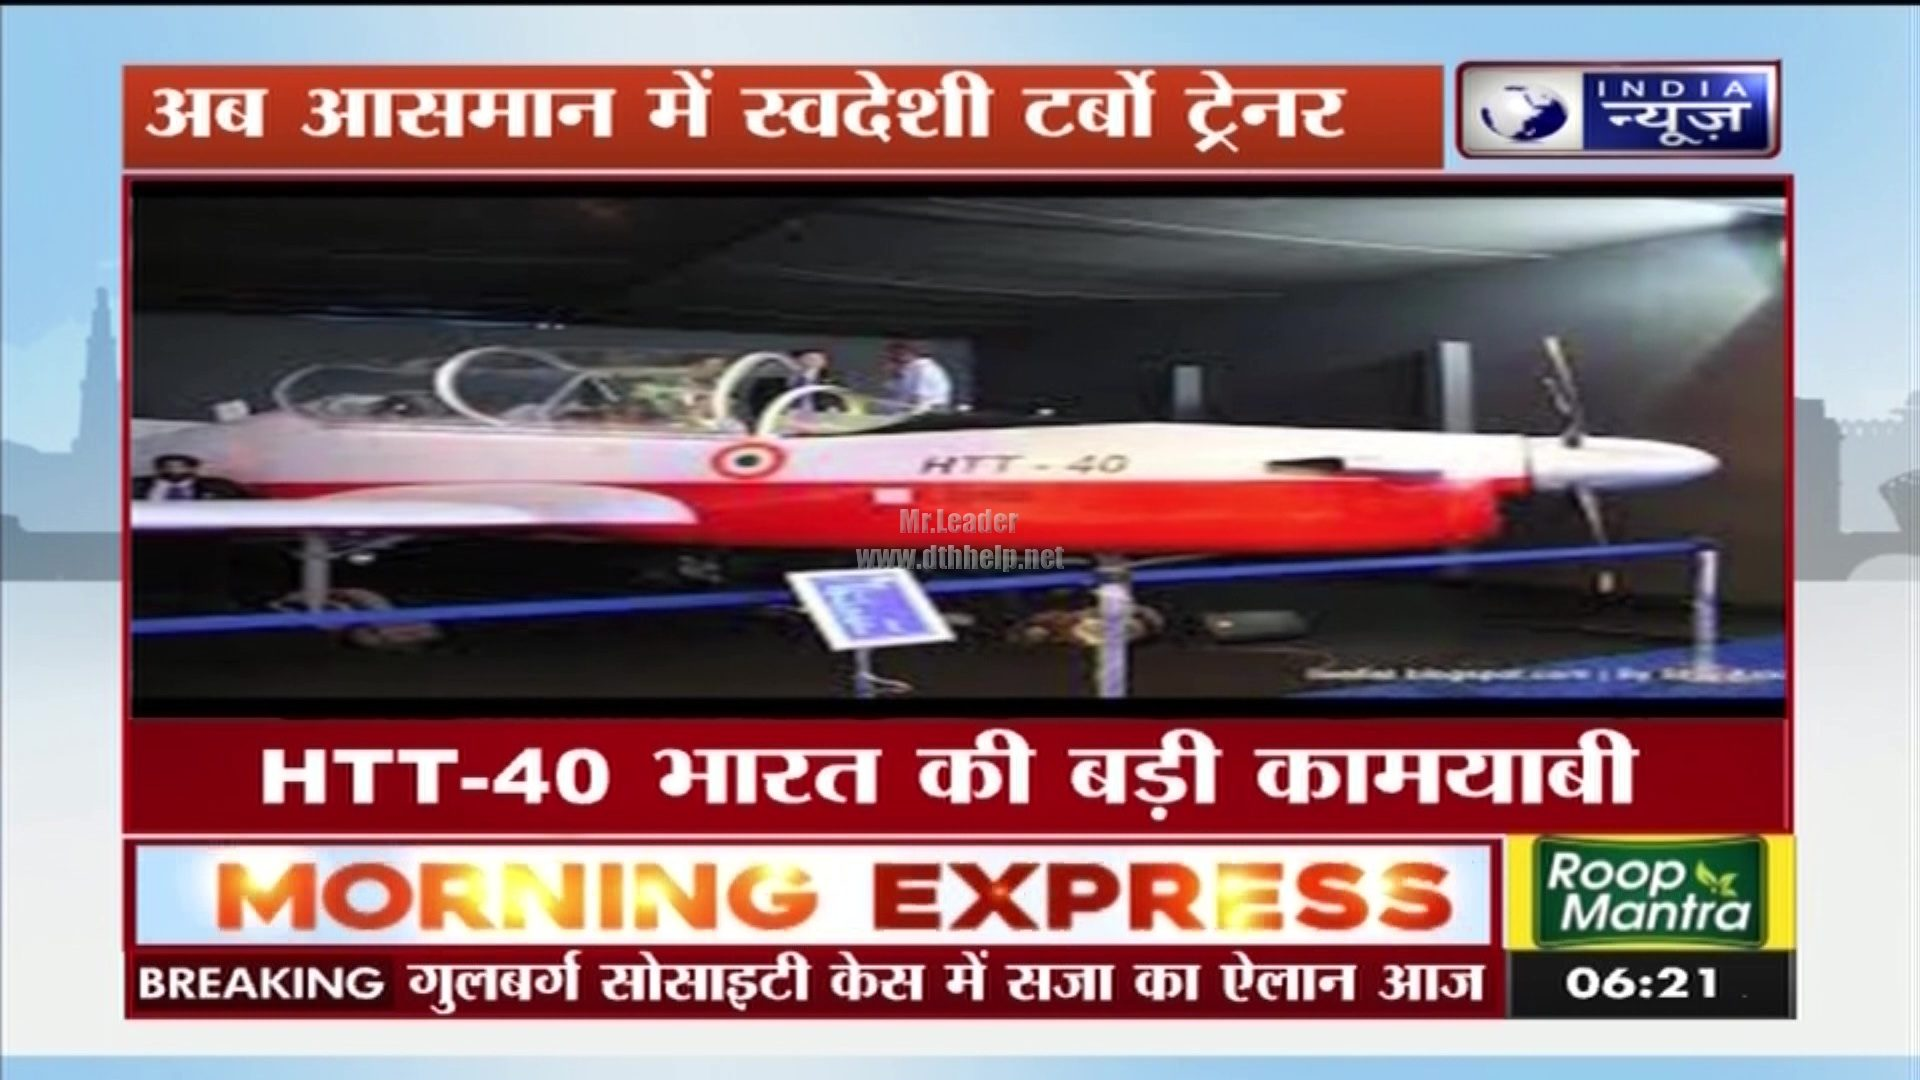 INDIA NEWS HD added on Asiasat 7 on the frequency 3691 H – updated on 17-June-16 at 06:21